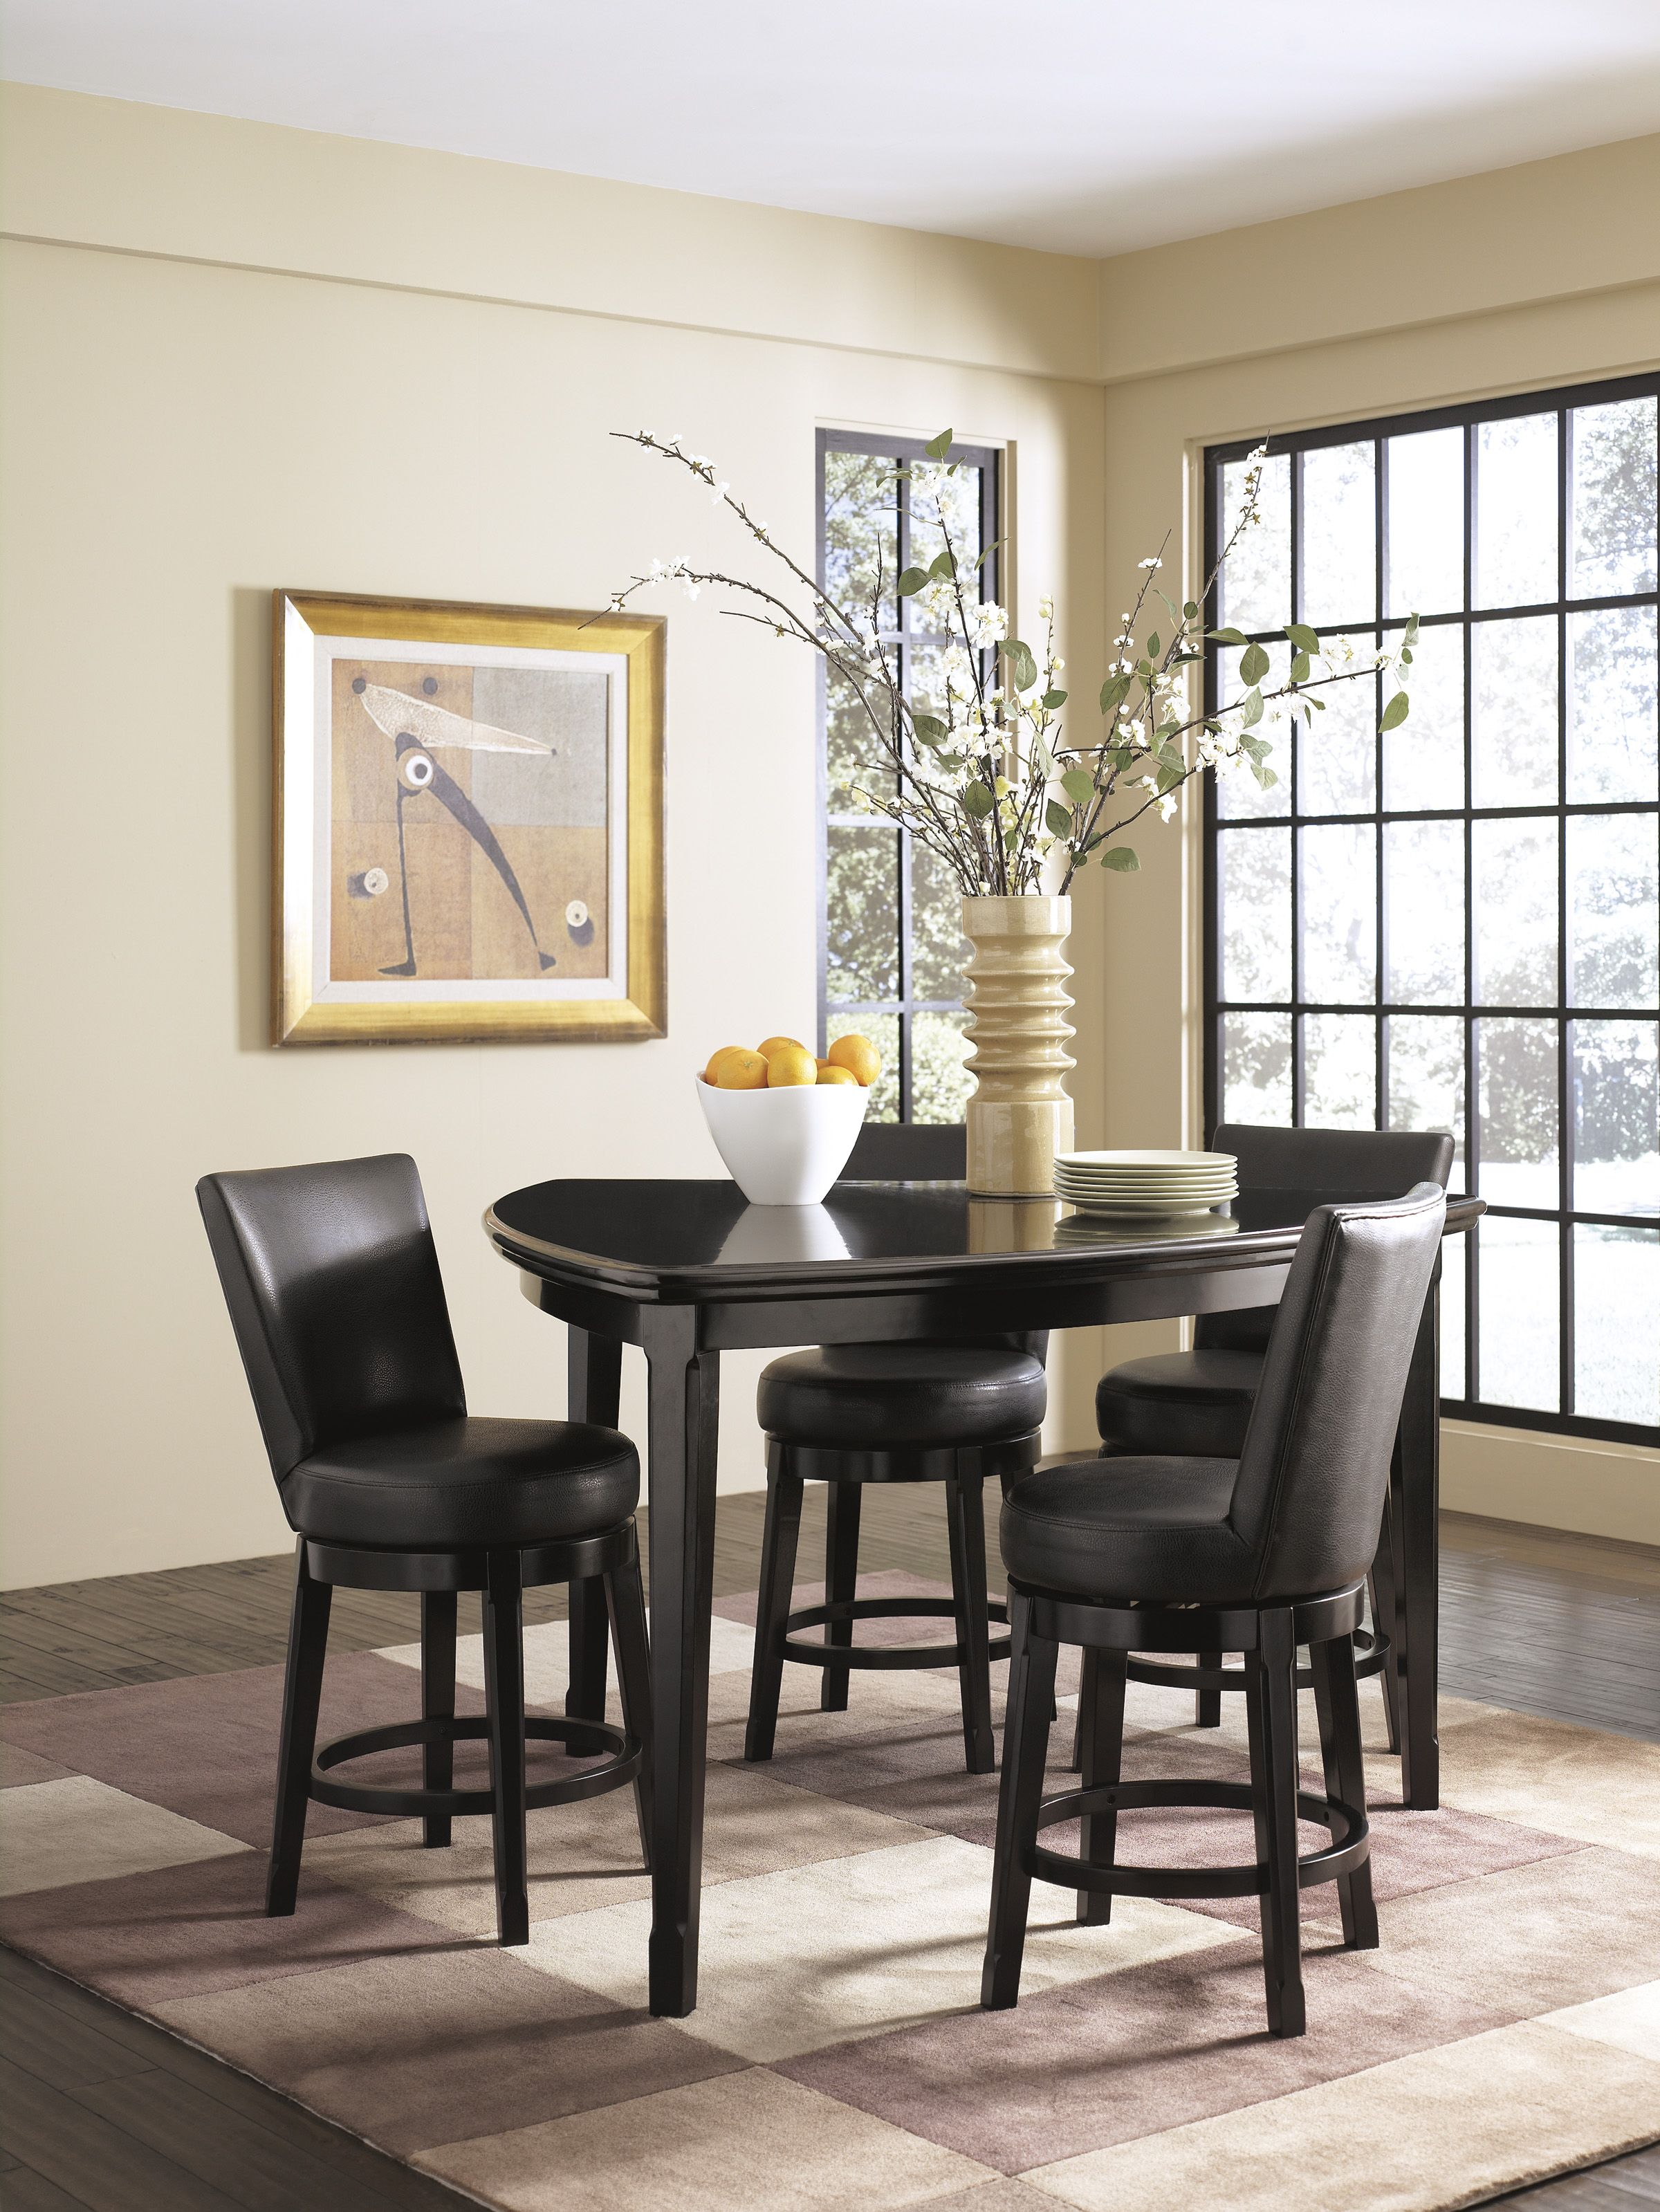 The perfect dining room has enough space for everyone emory by ashley furniture want to get updates on new products like this and specials